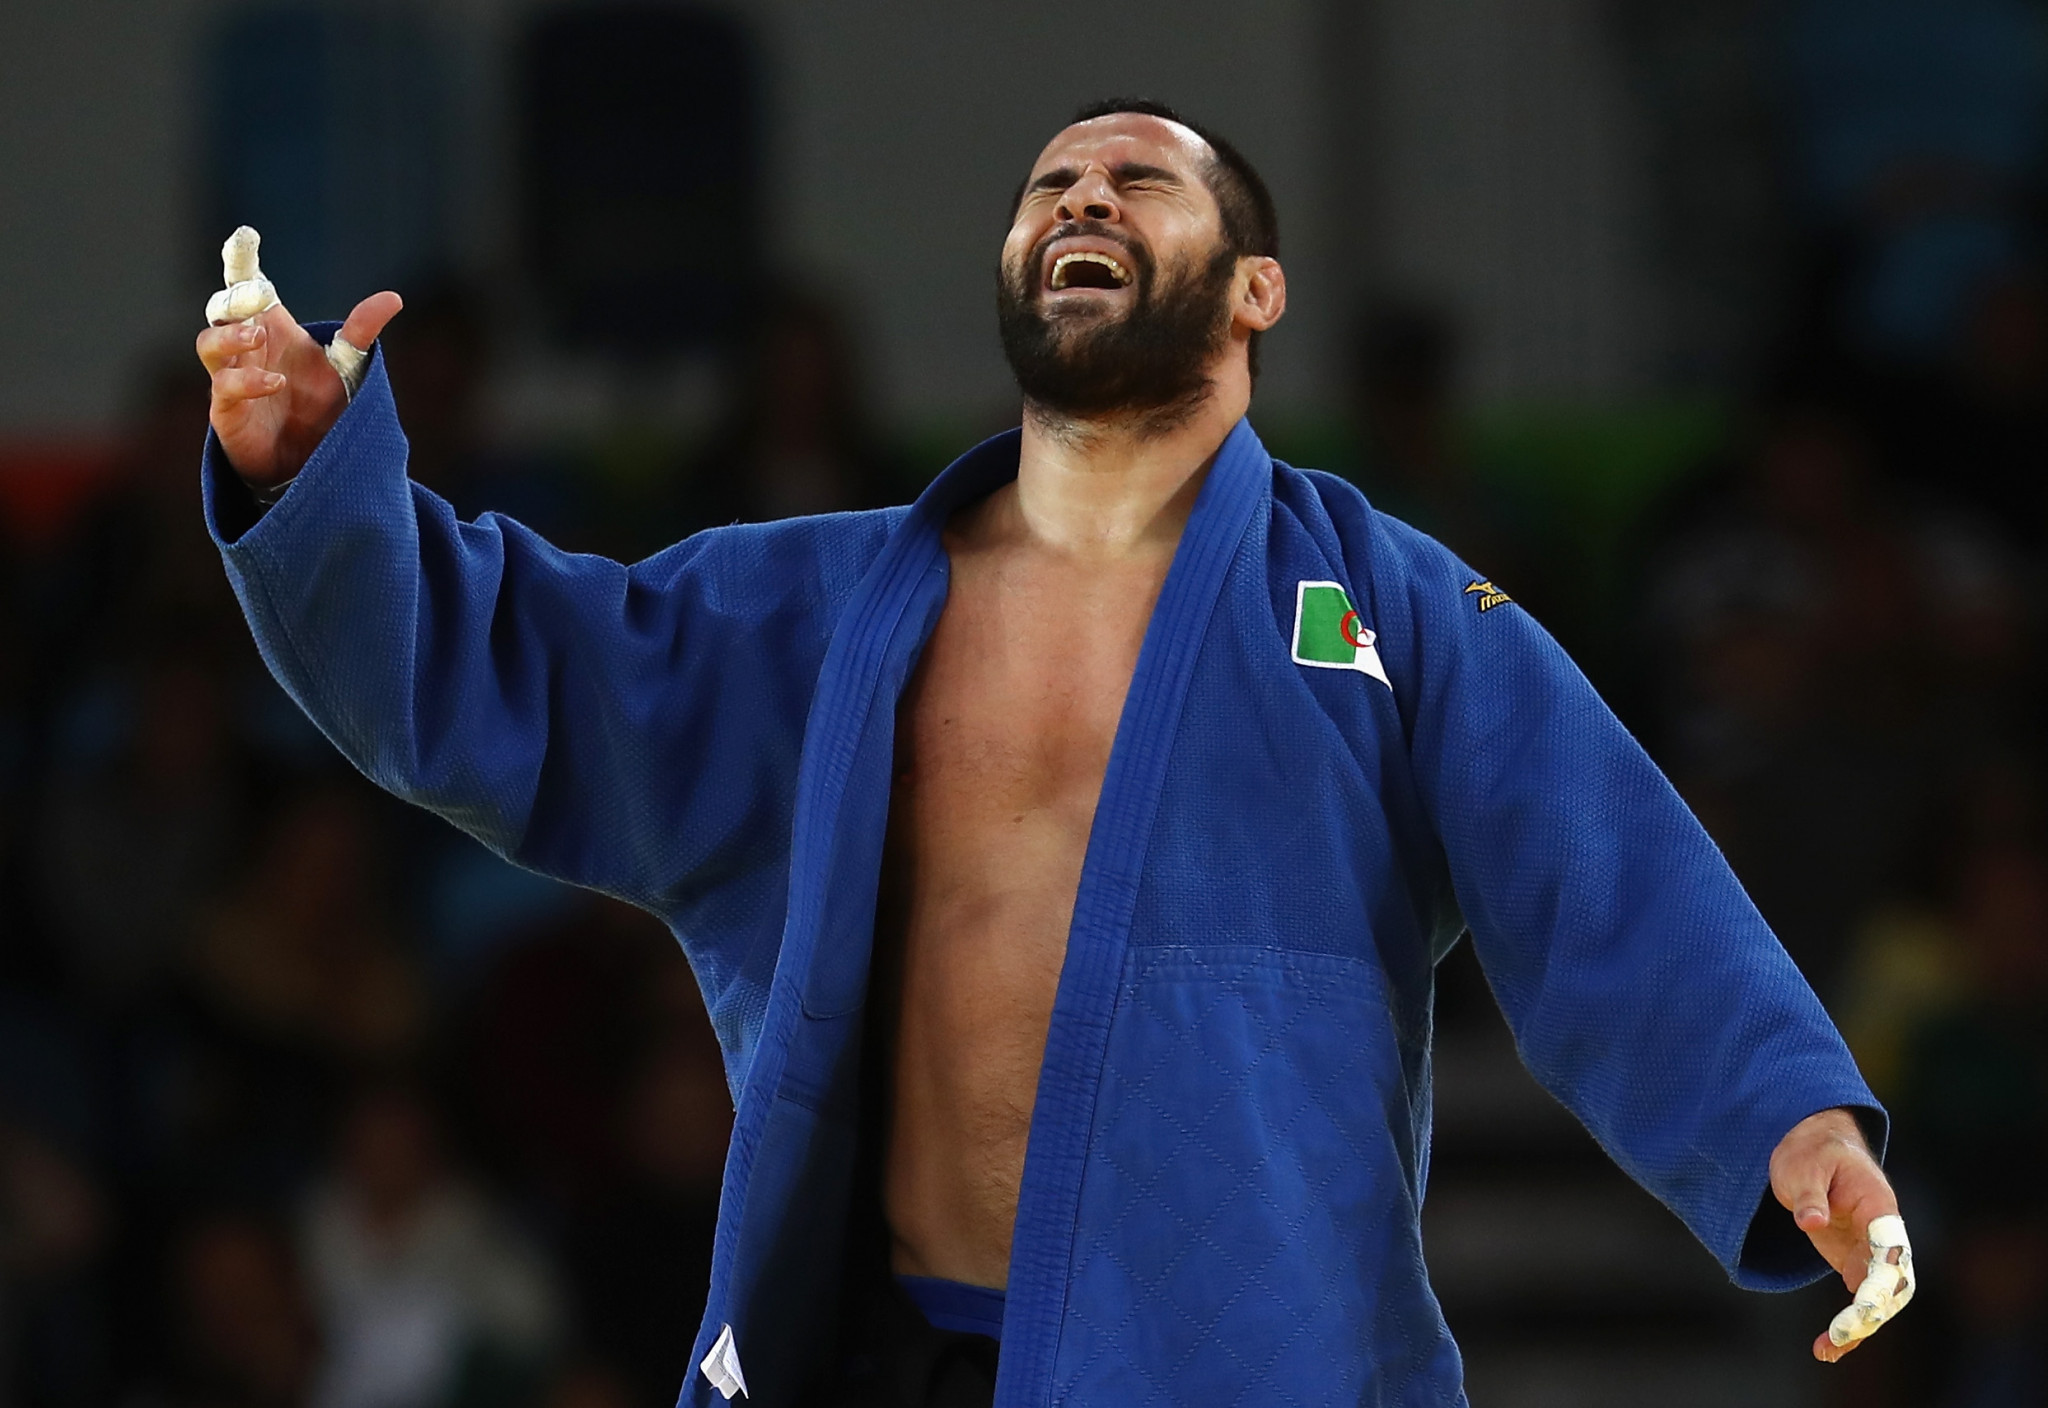 Lyes Bouyacoub triumphed in the men's under-100kg division ©Getty Images